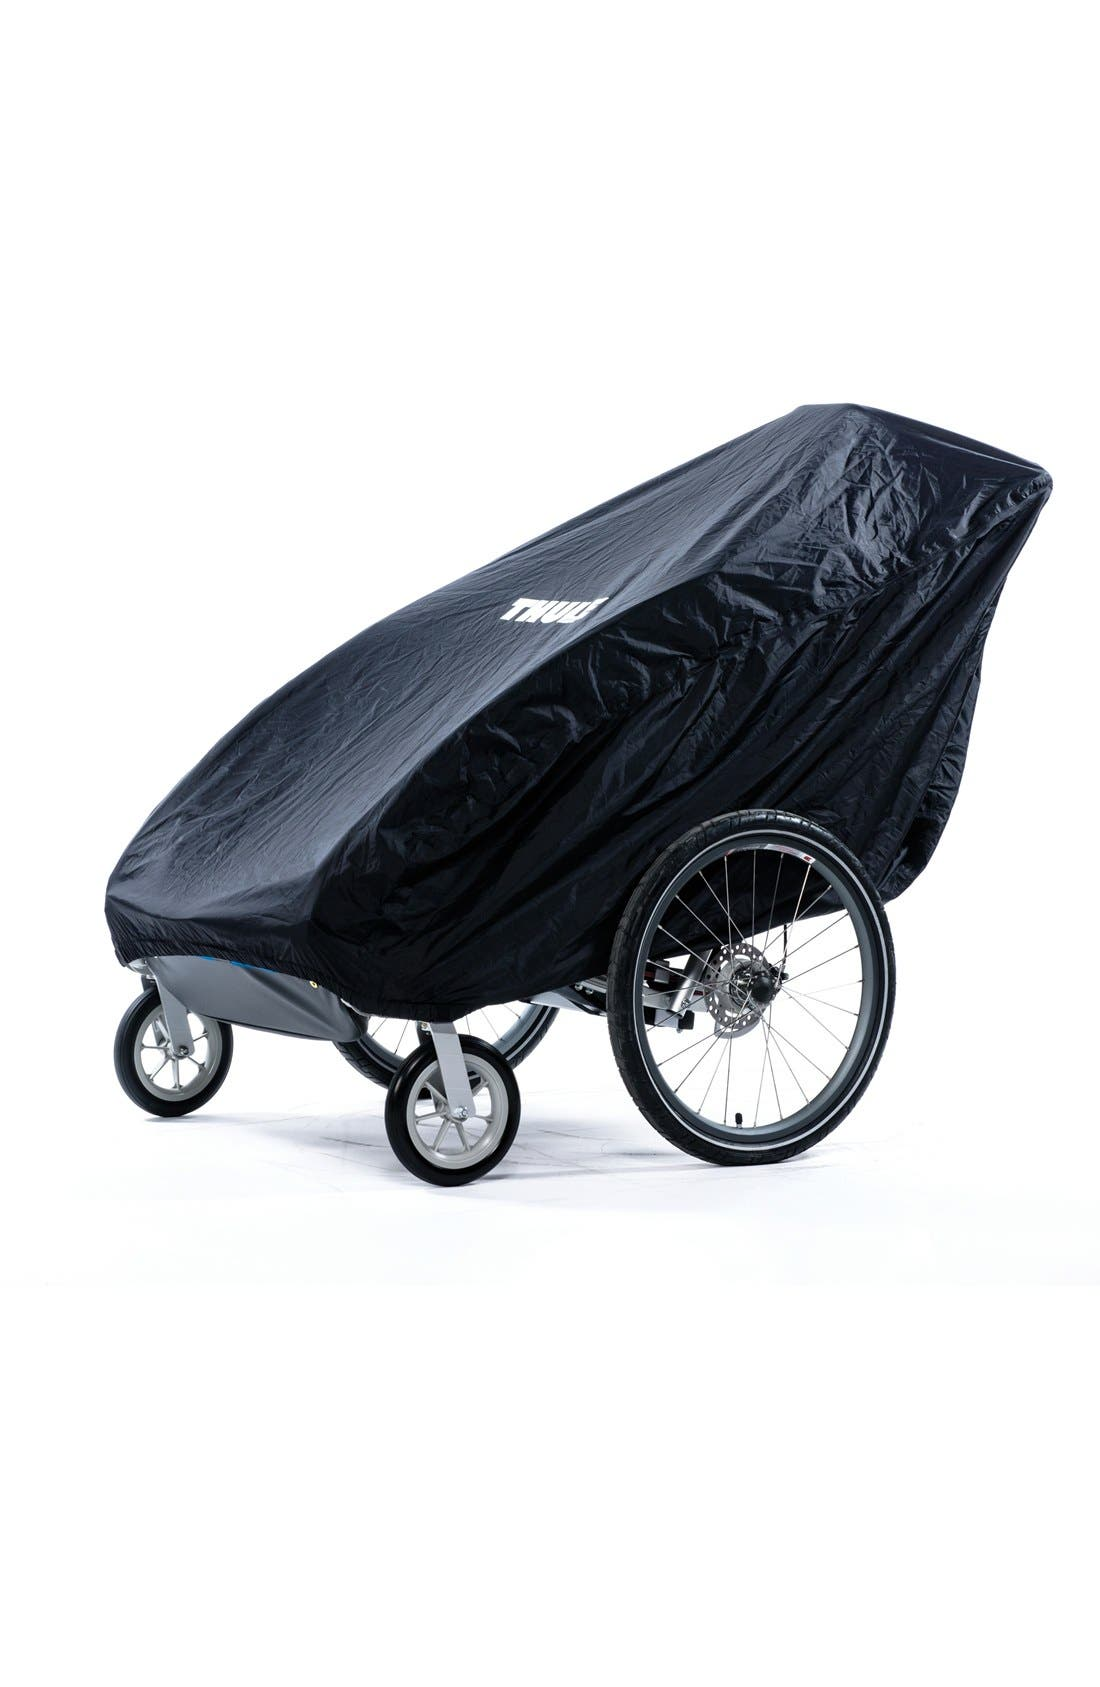 Alternate Image 1 Selected - Thule Stroller Storage Cover